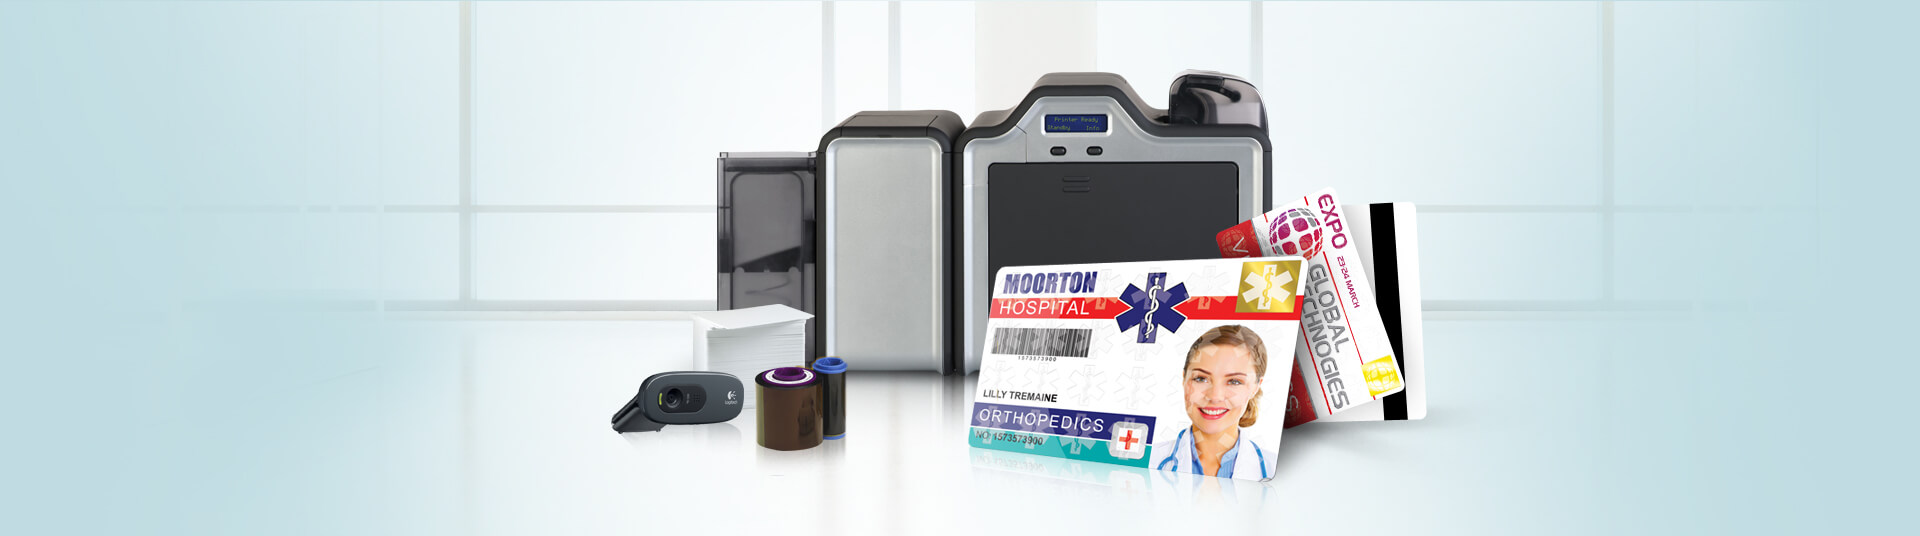 ID Card Printer Security Features